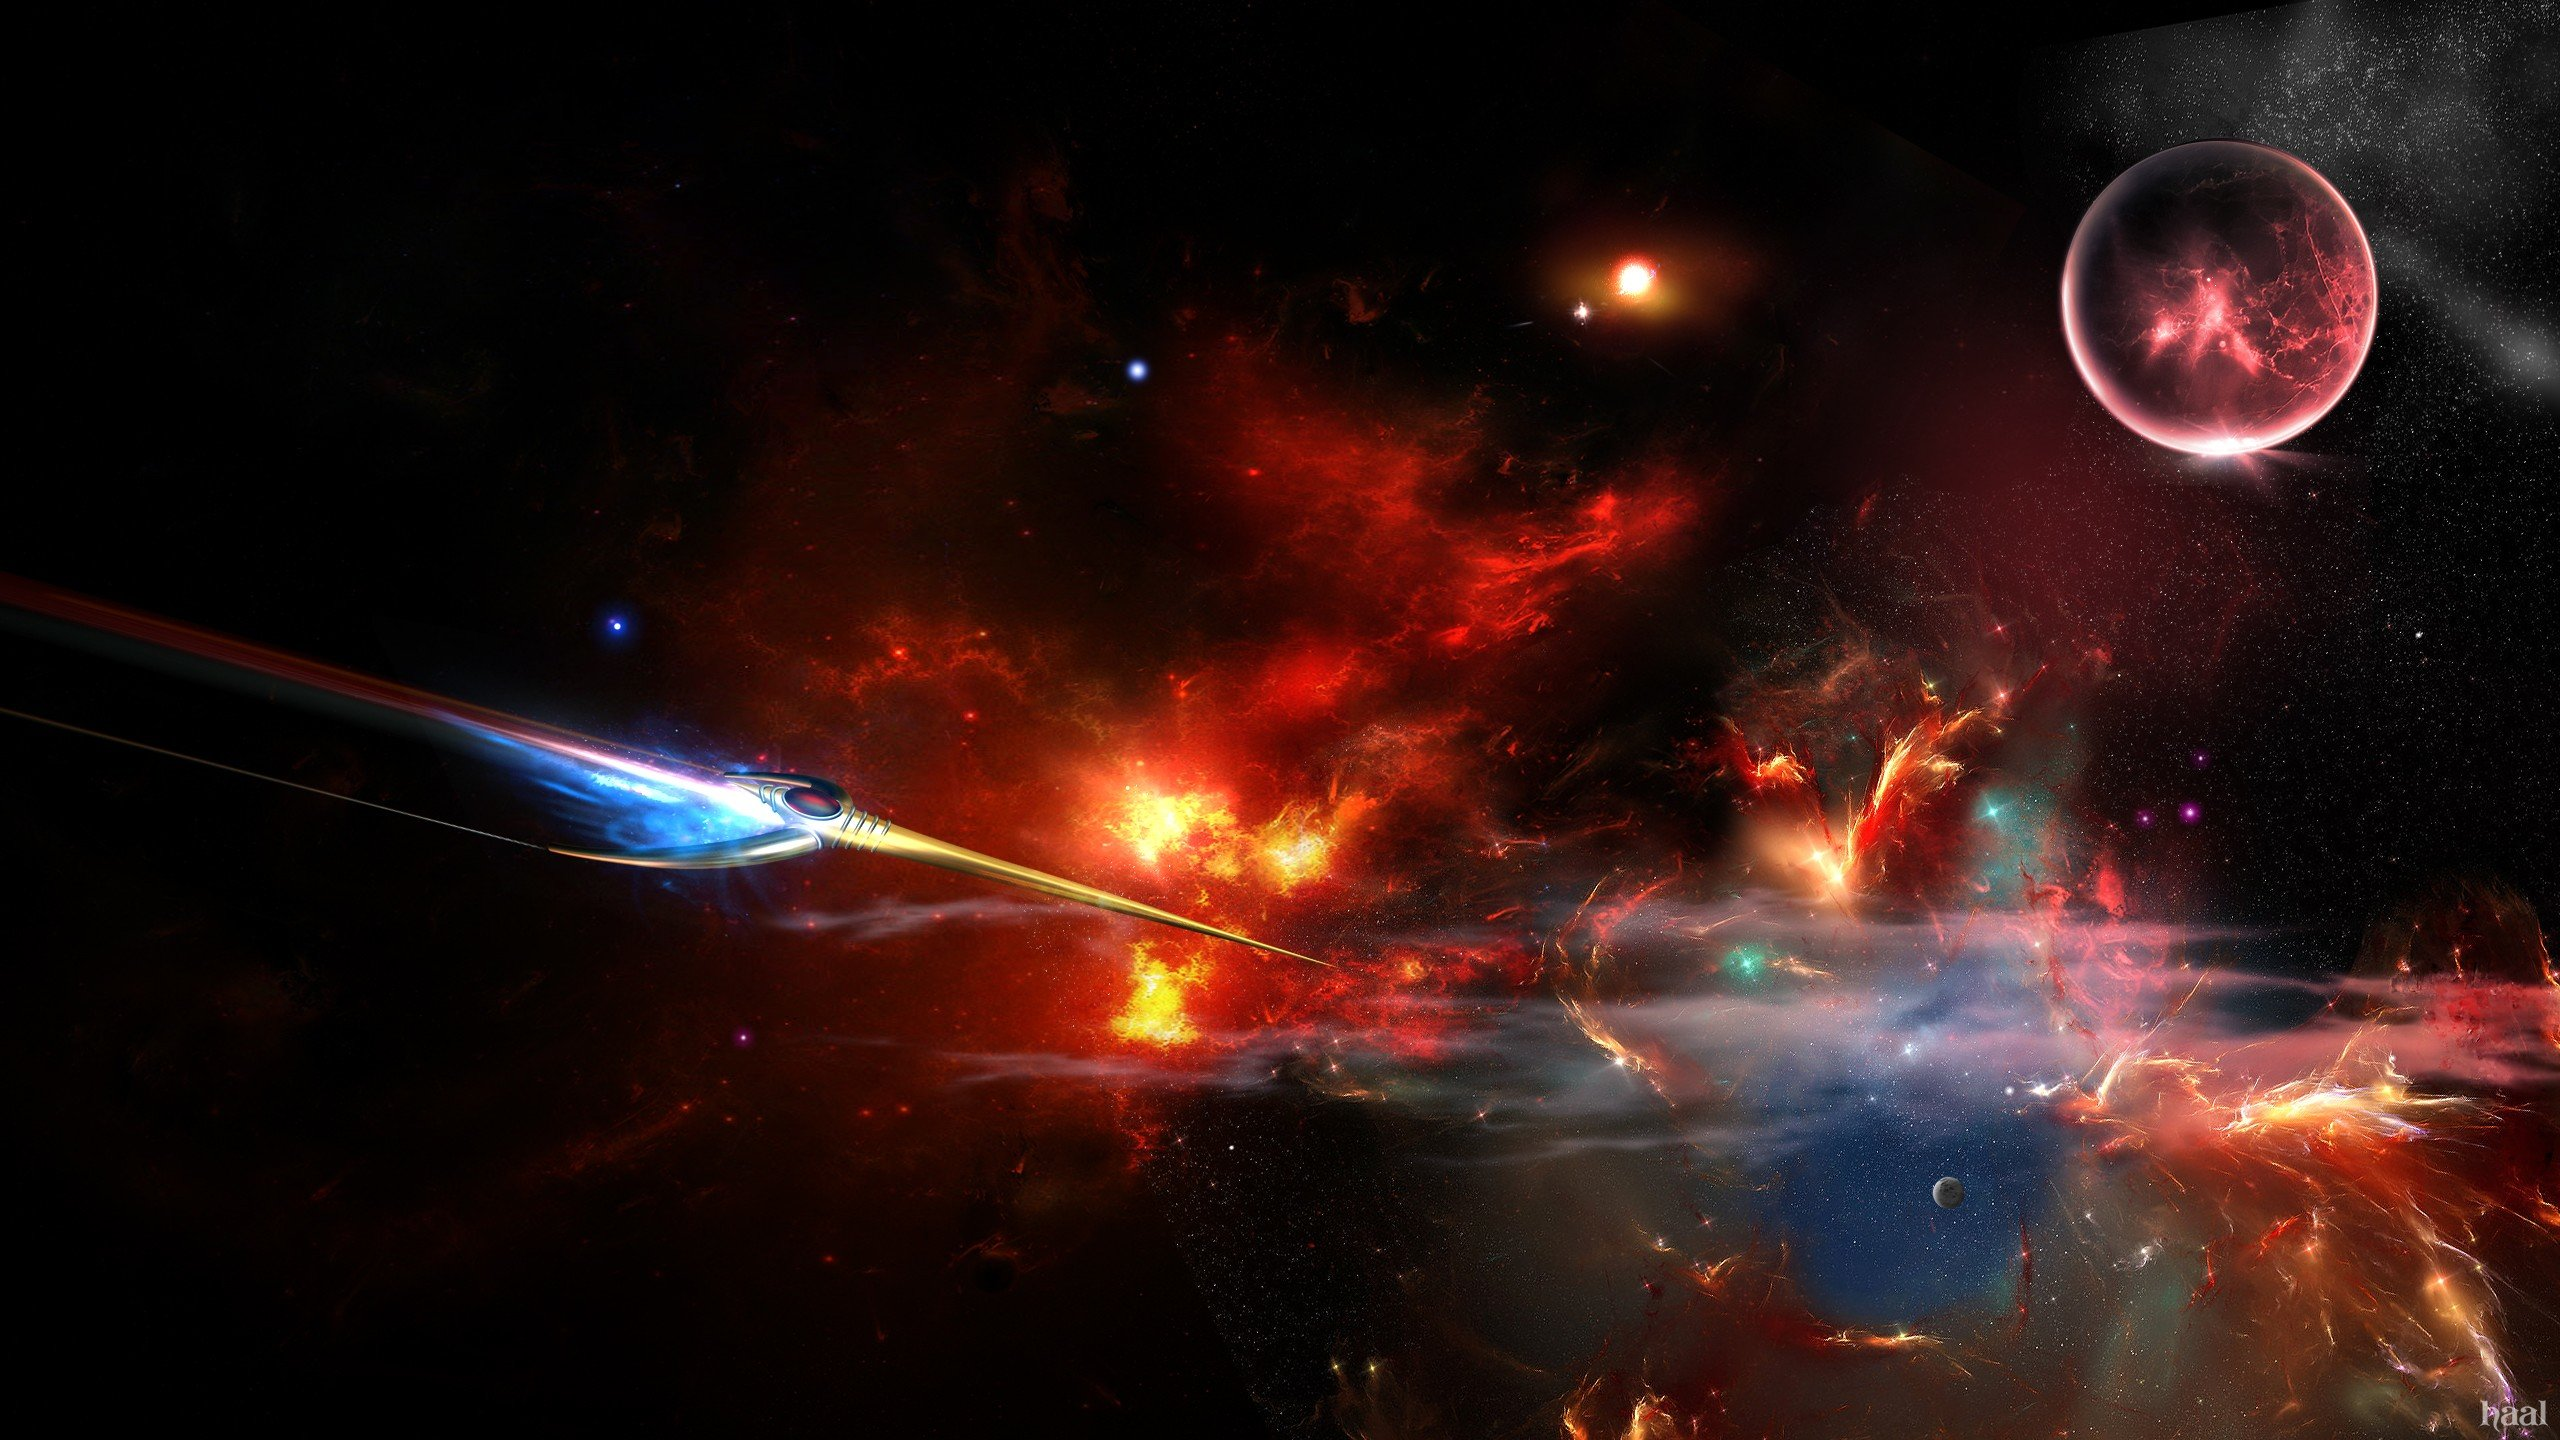 Download hd 2560x1440 Spaceship PC wallpaper ID:184400 for free